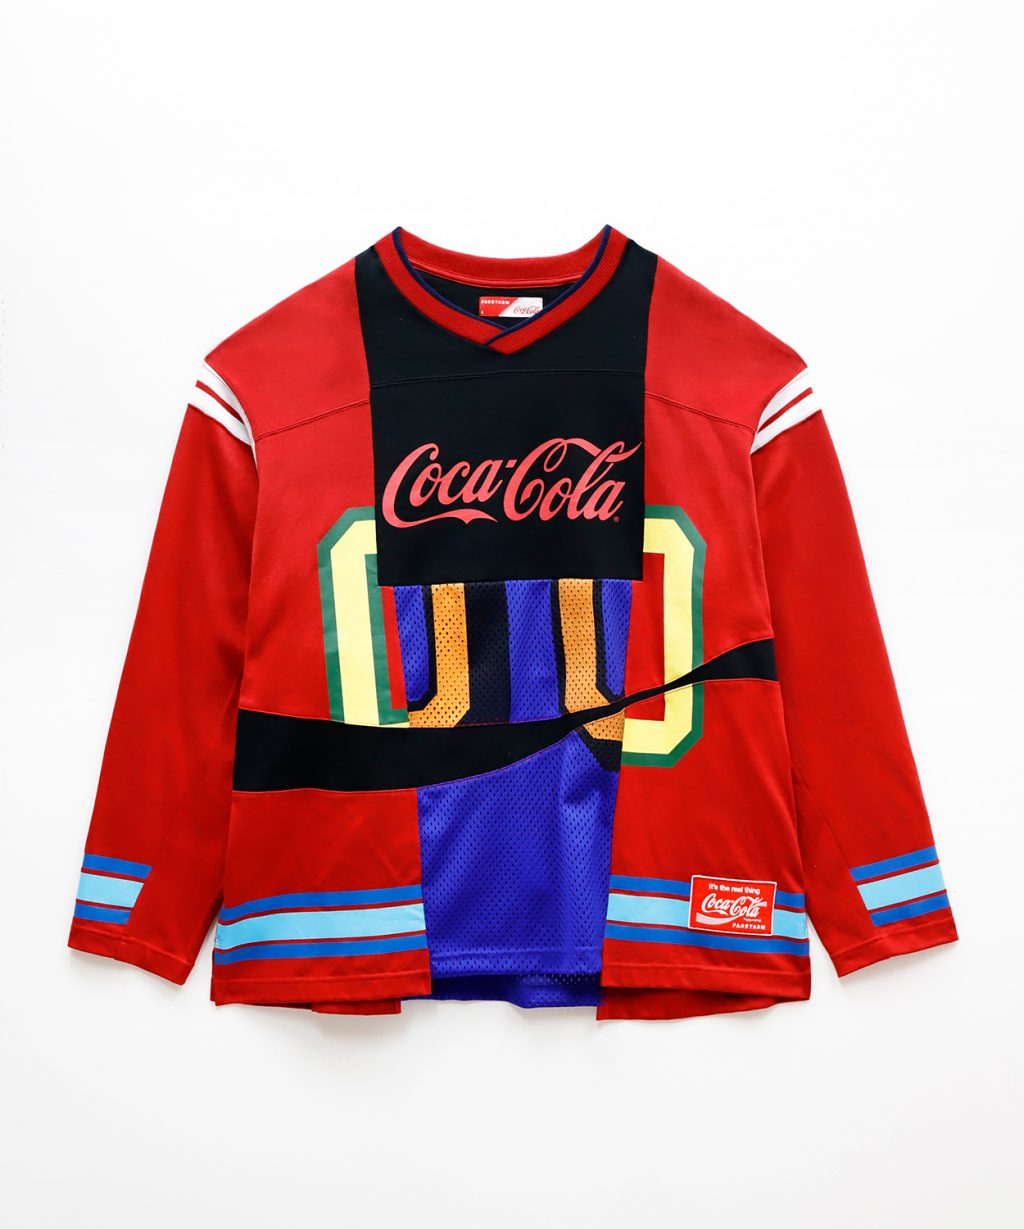 COCA-COLA-MIX-FOOTBALL-LONG-TEE-red1-1024x1229.jpg